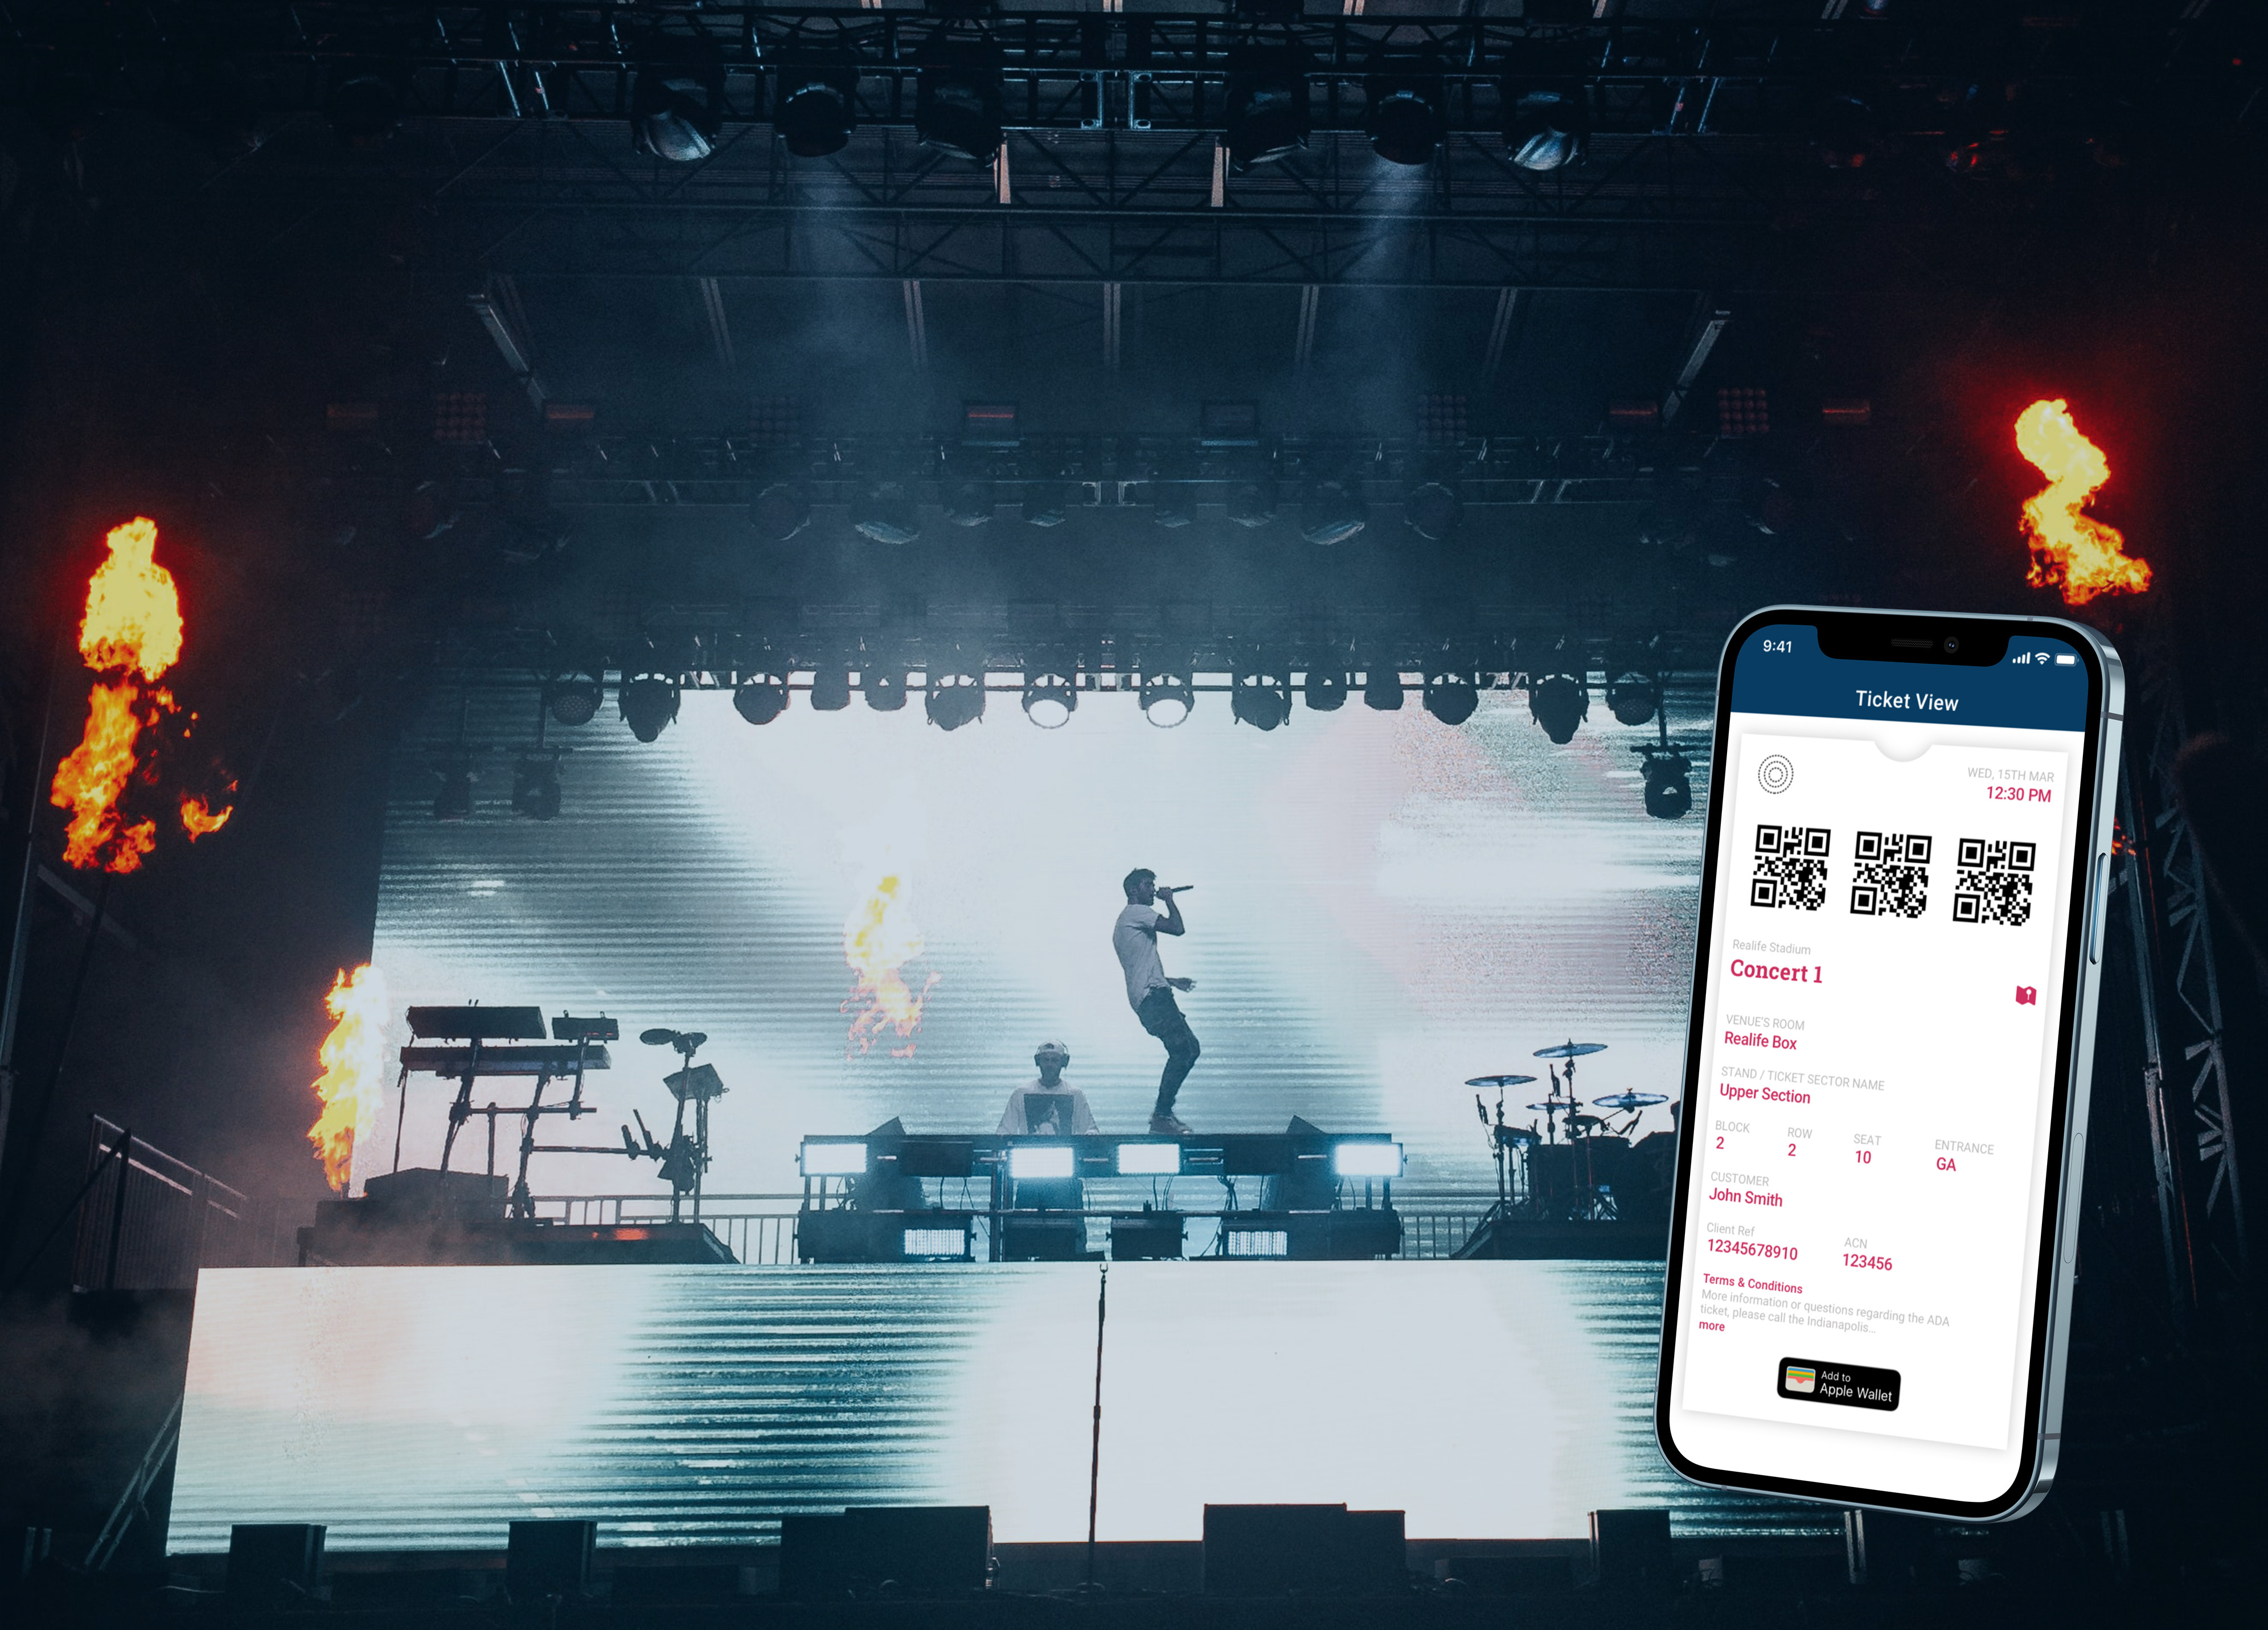 Top 5 Reasons to Add Digital Ticketing to Your Sales Approach